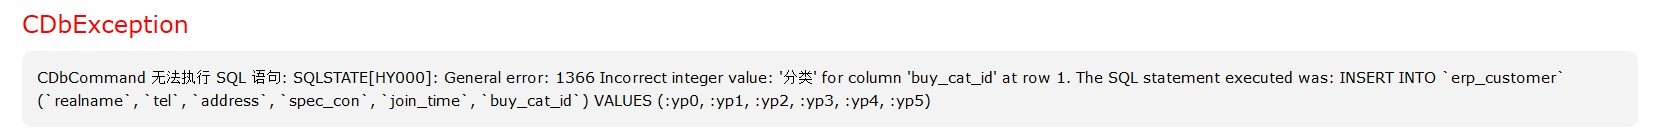 提示mysql 1366错误 General error: 1366 Incorrect integer value: